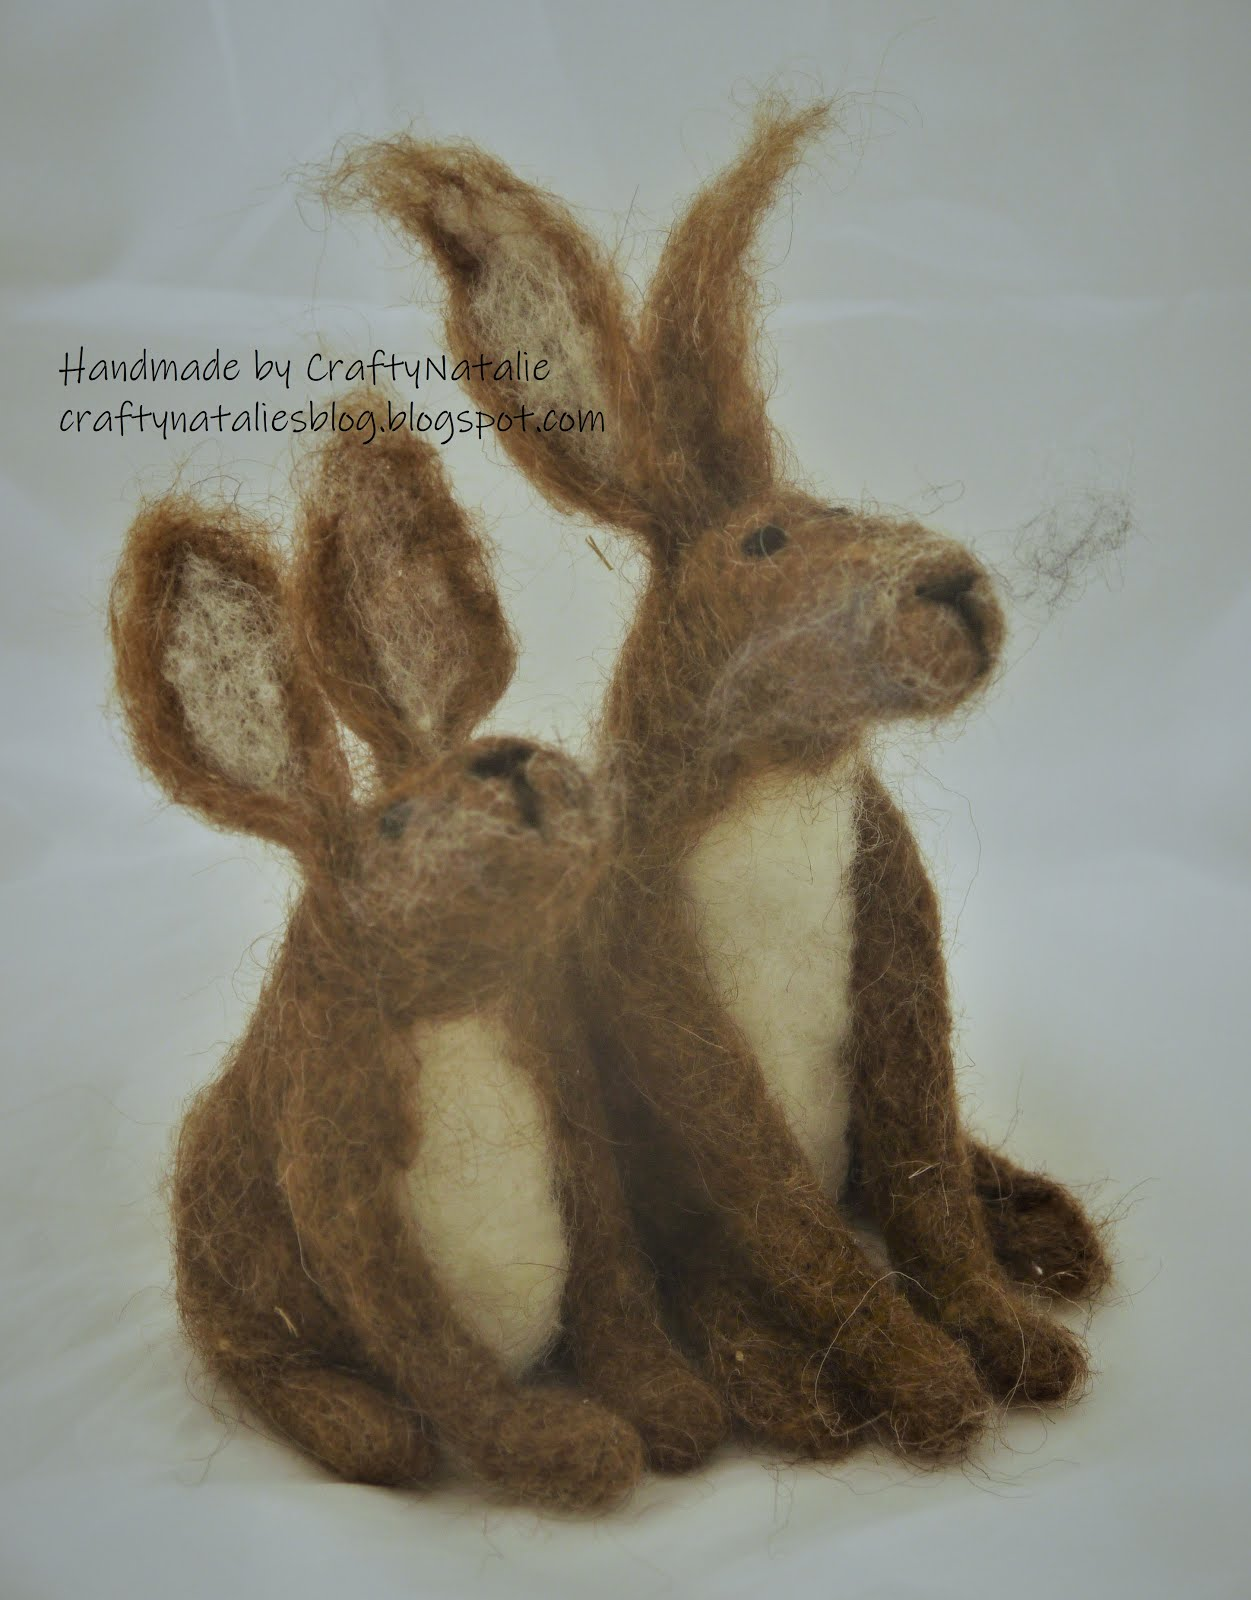 My Needlefelting Blog